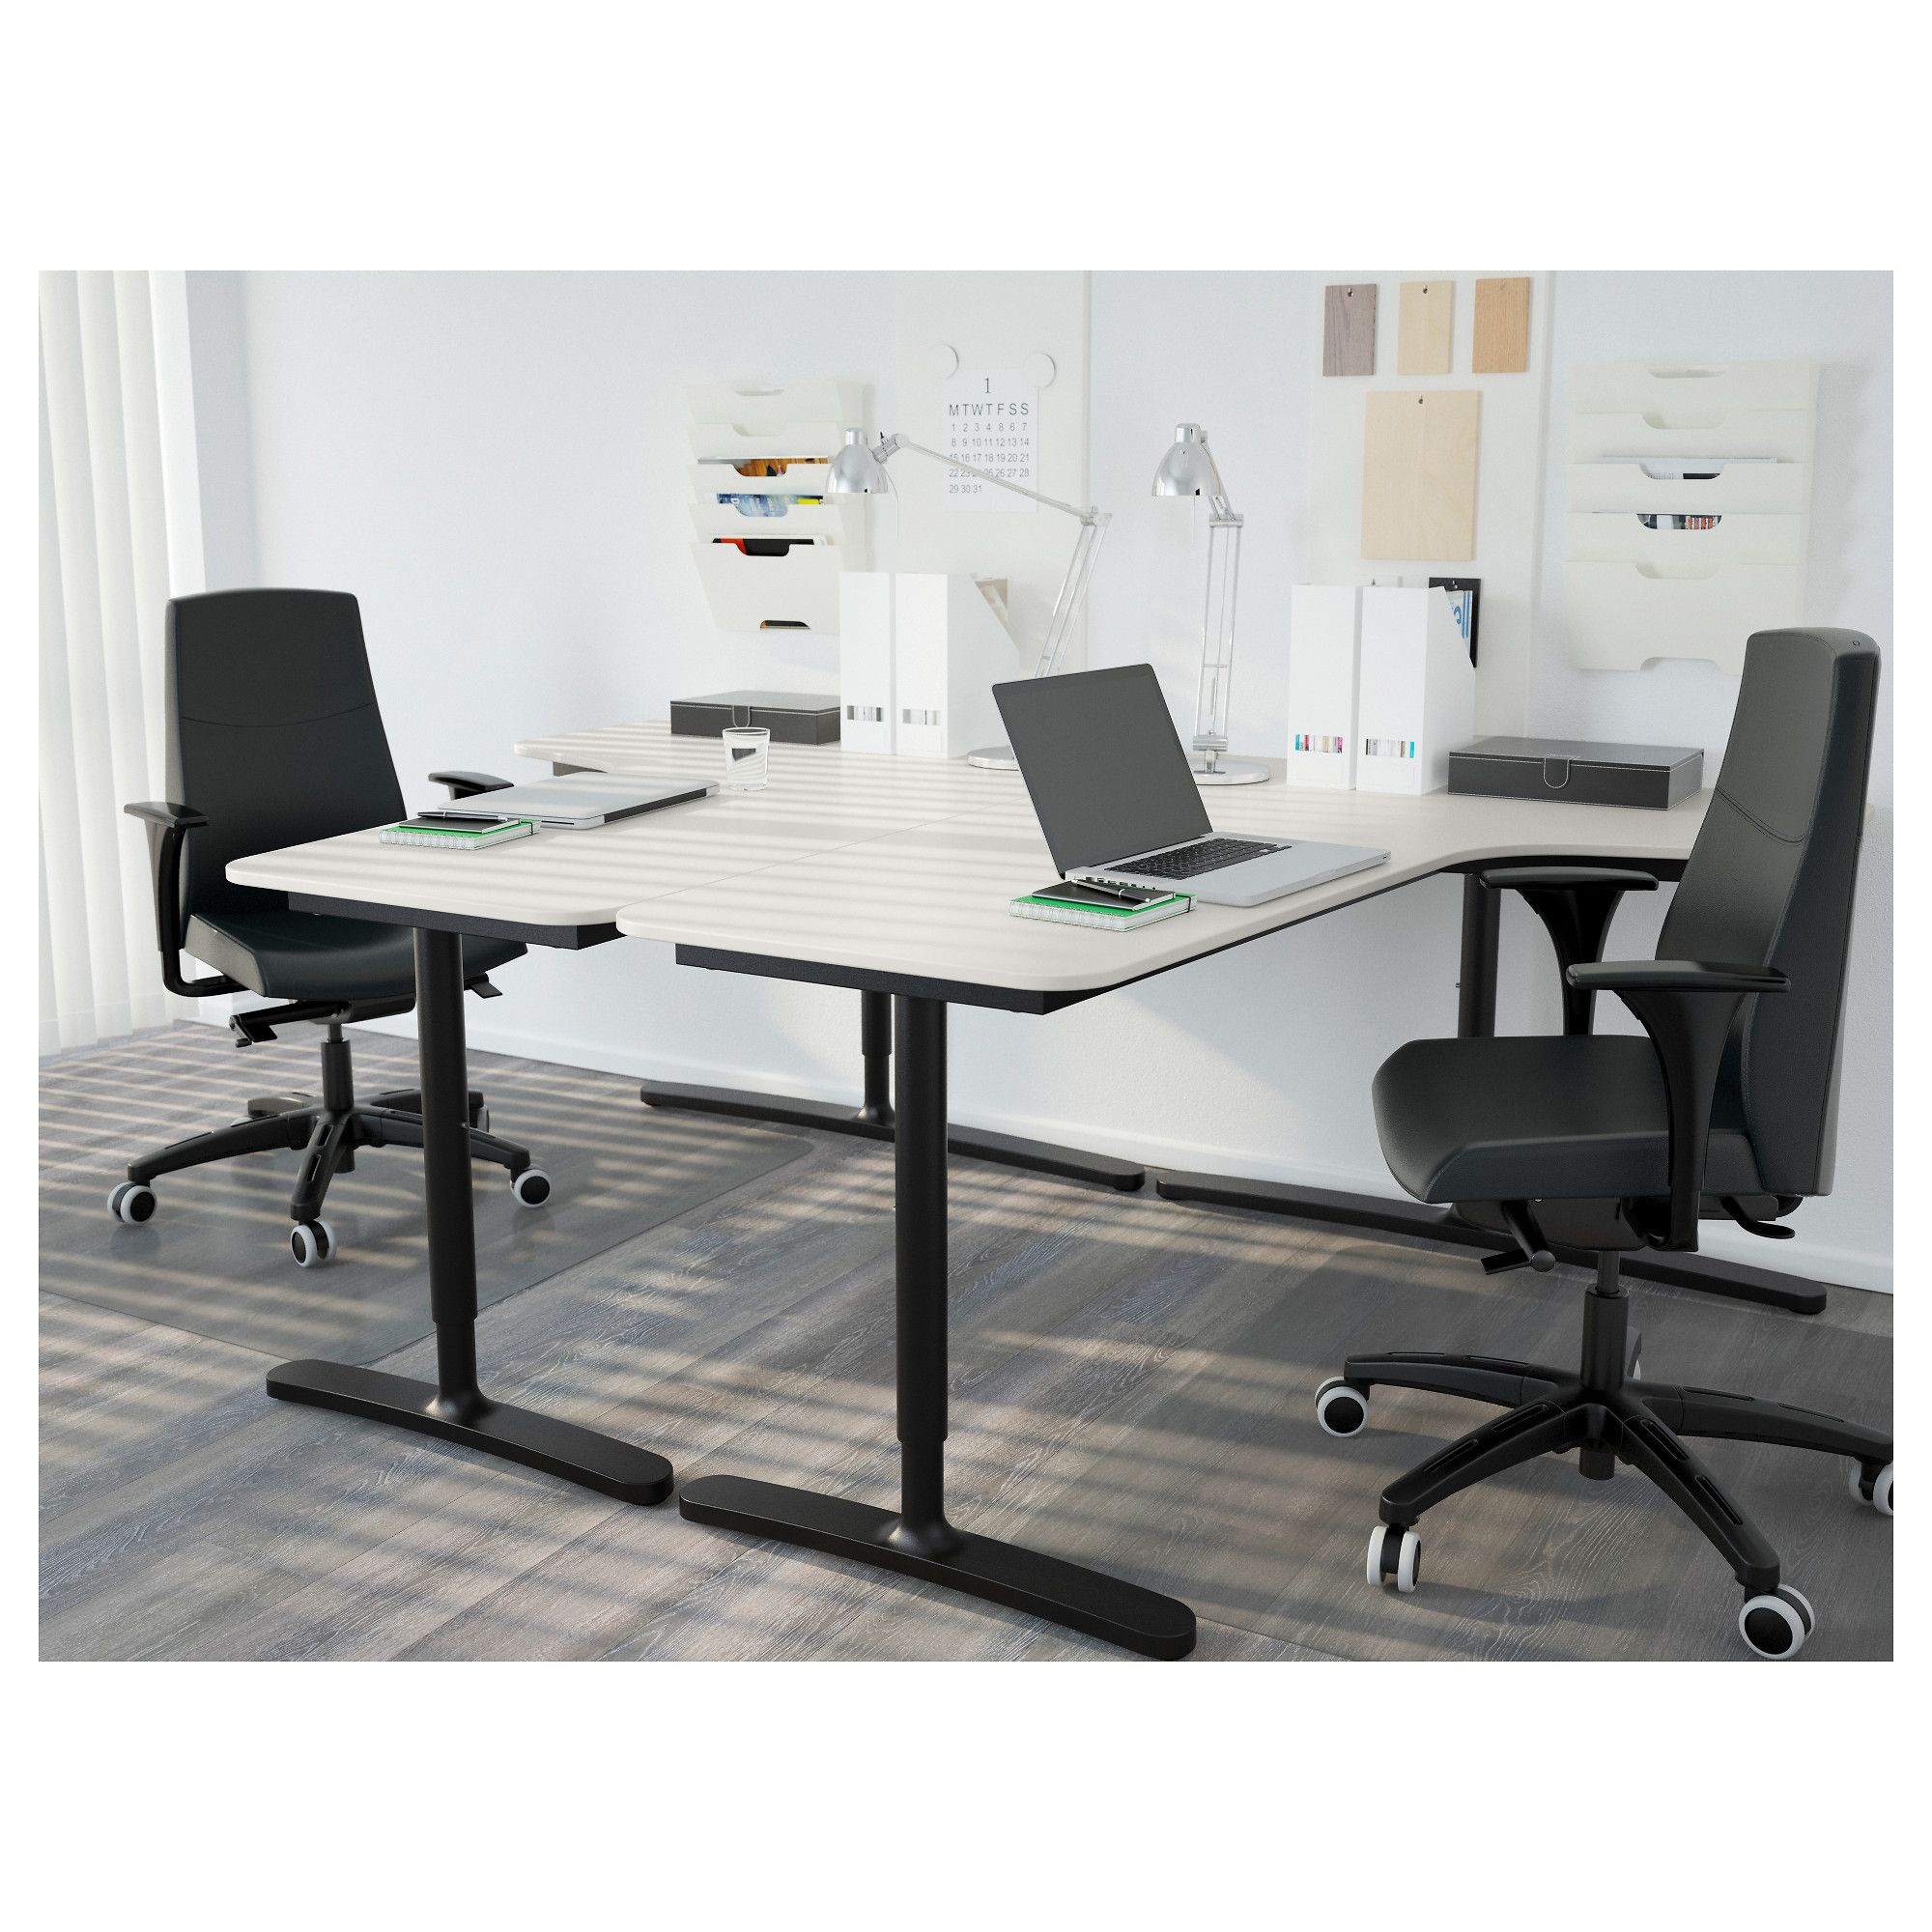 Bekant Corner Desk Right White Black Ikea Front Office Furniture Home Office Furniture Cheap Office Furniture